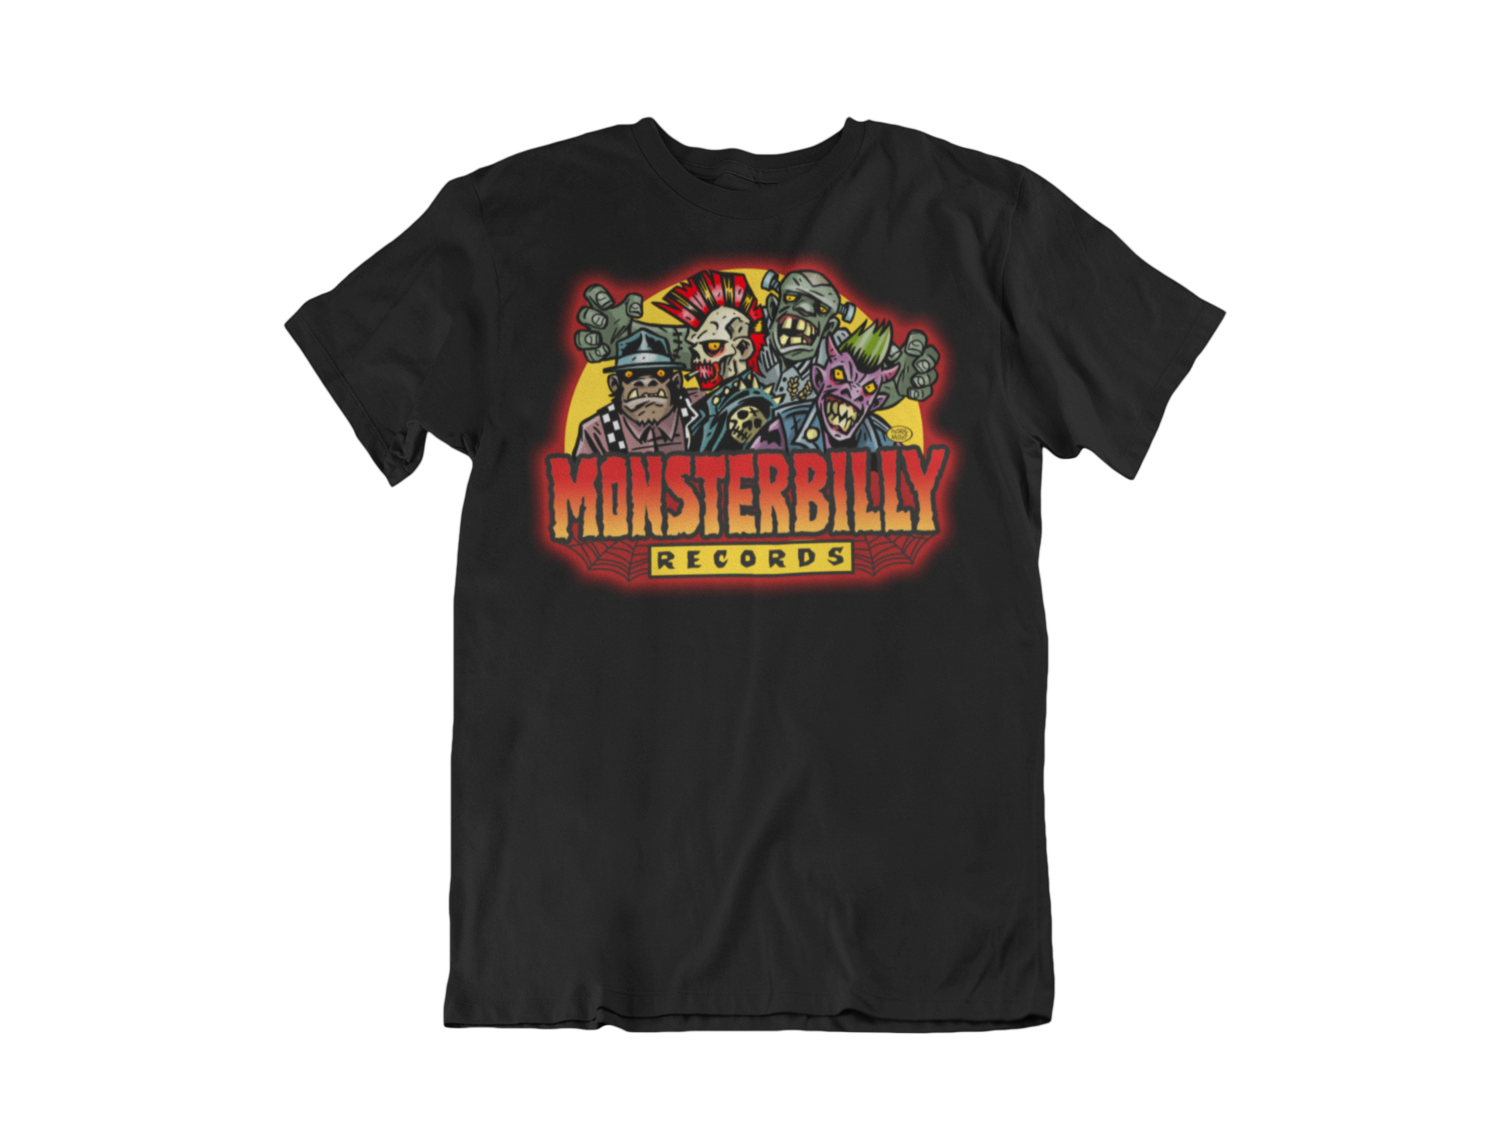 MONSTERBILLY RECORDS T-SHIRT MAN by PASKAL MILLET